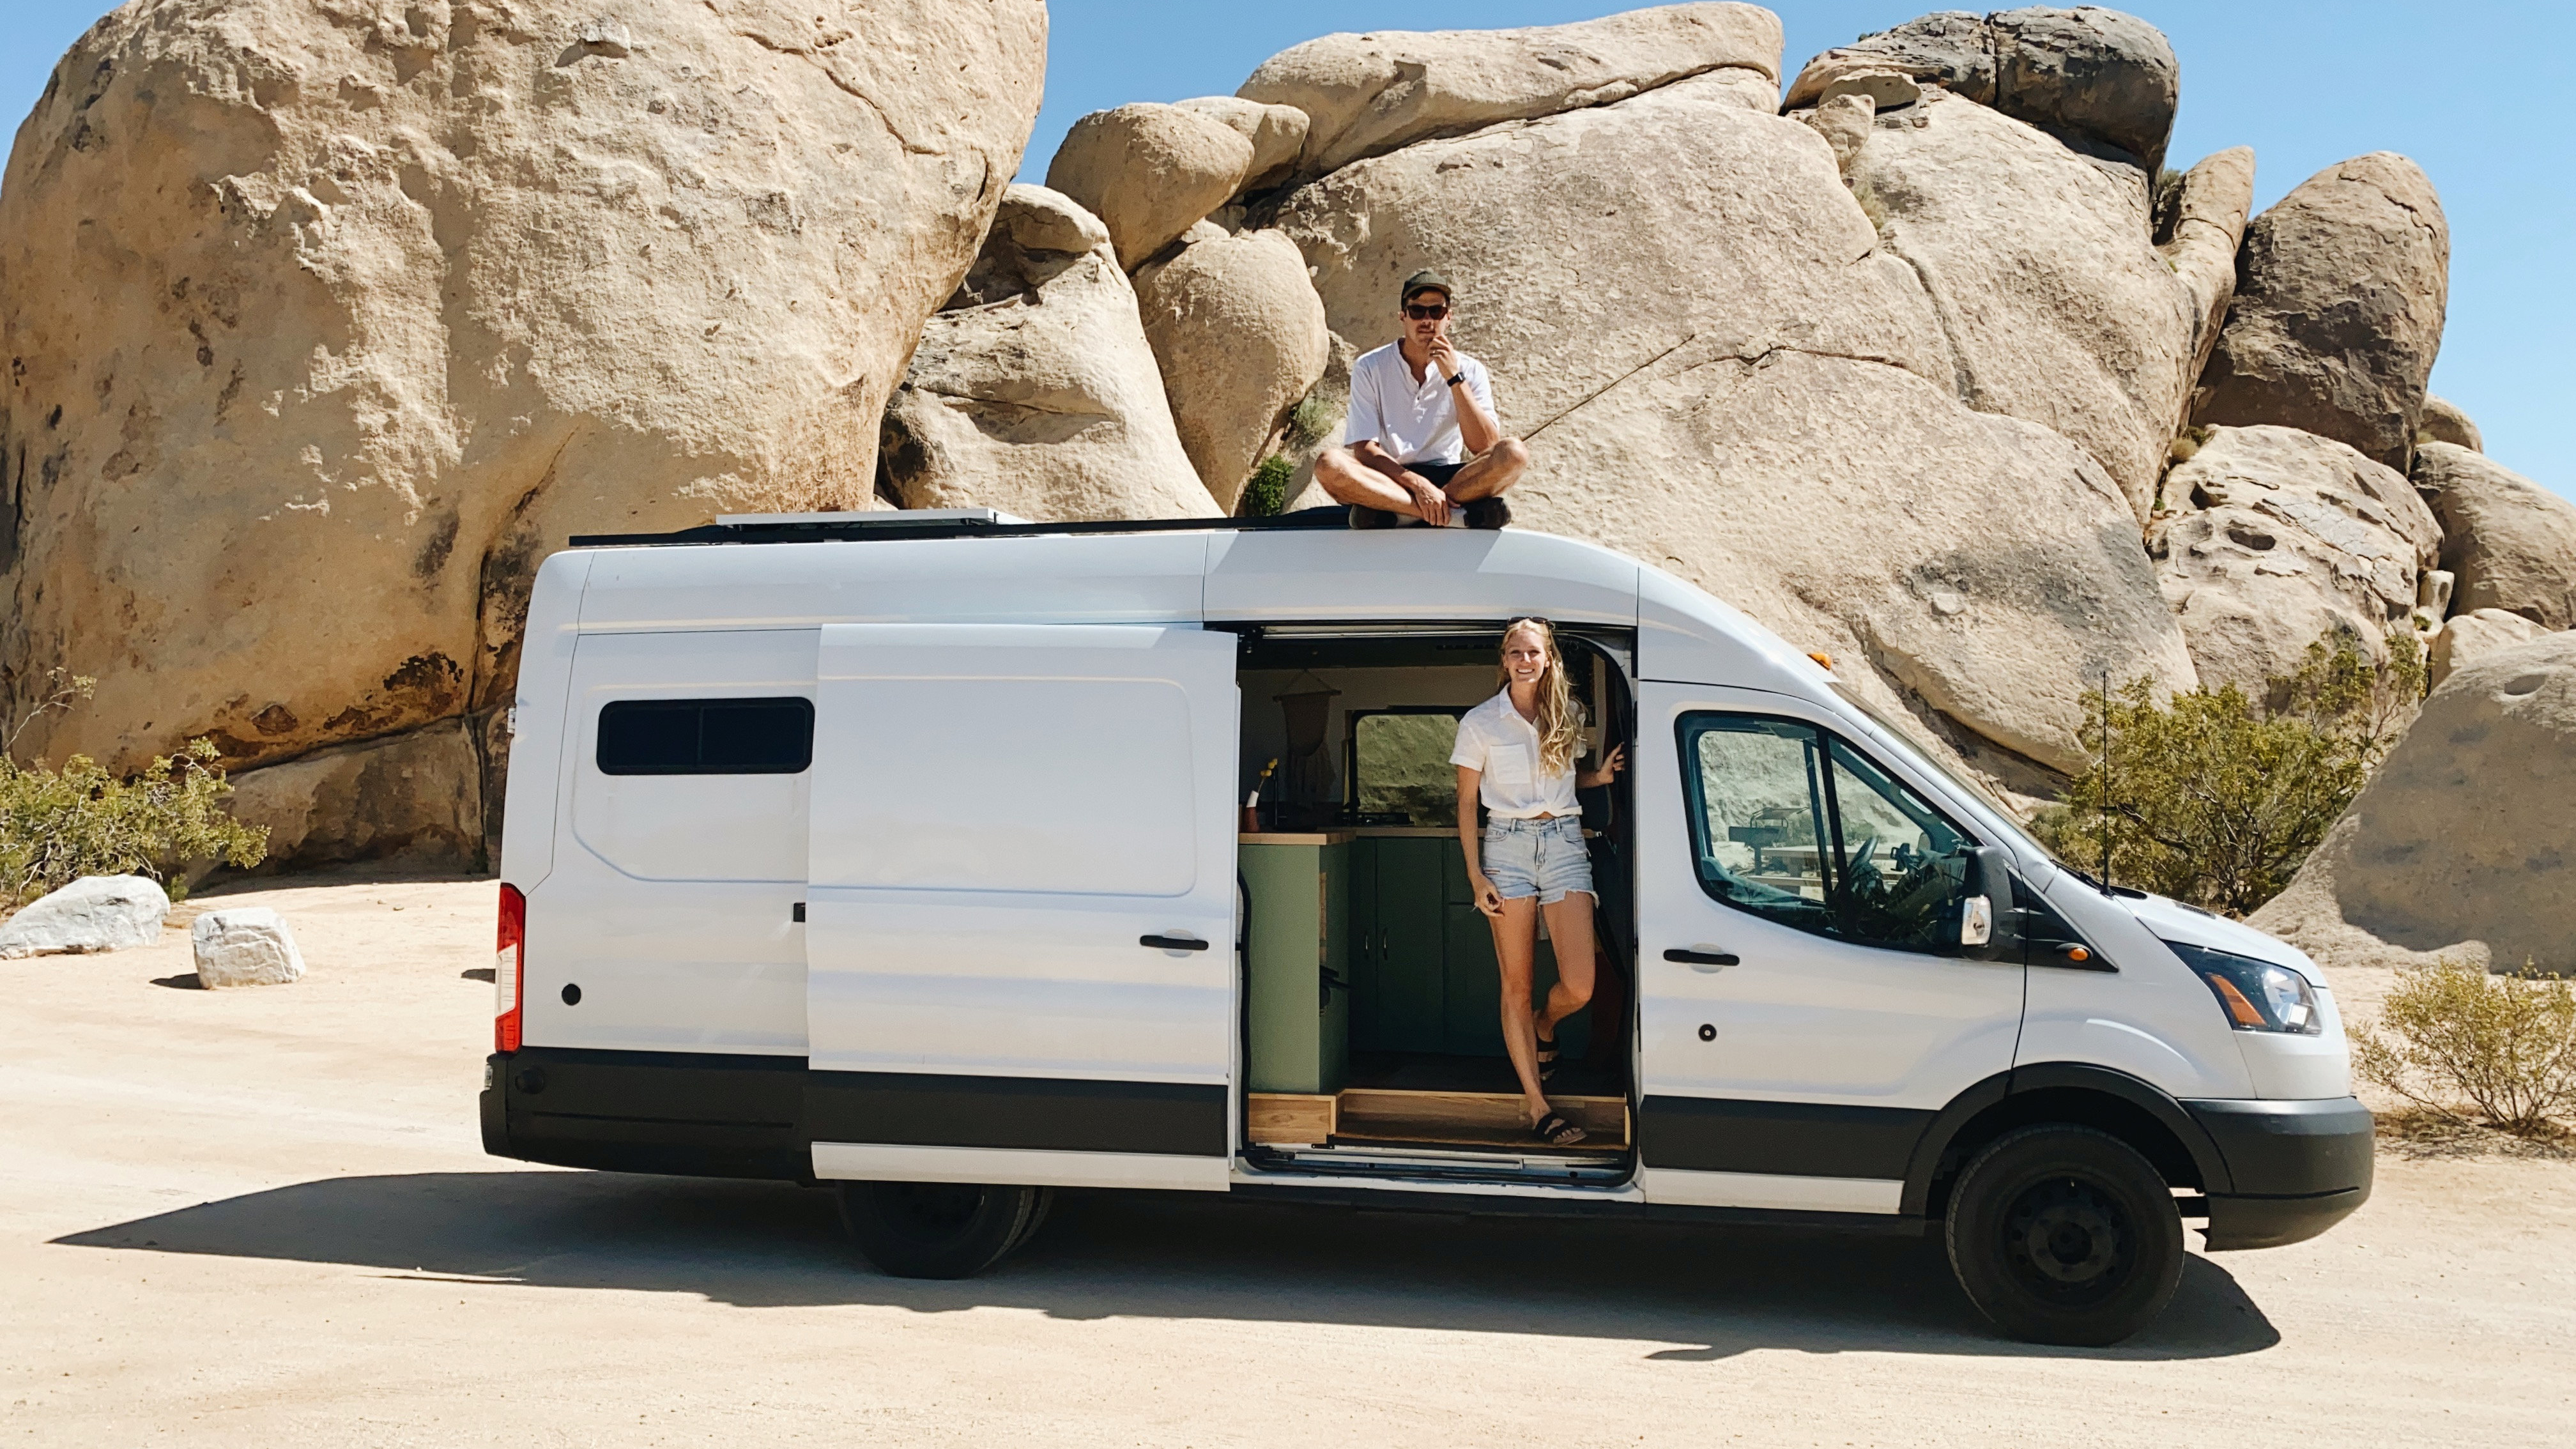 Newlyweds travel across the country in a van after COVID-19 canceled their wedding